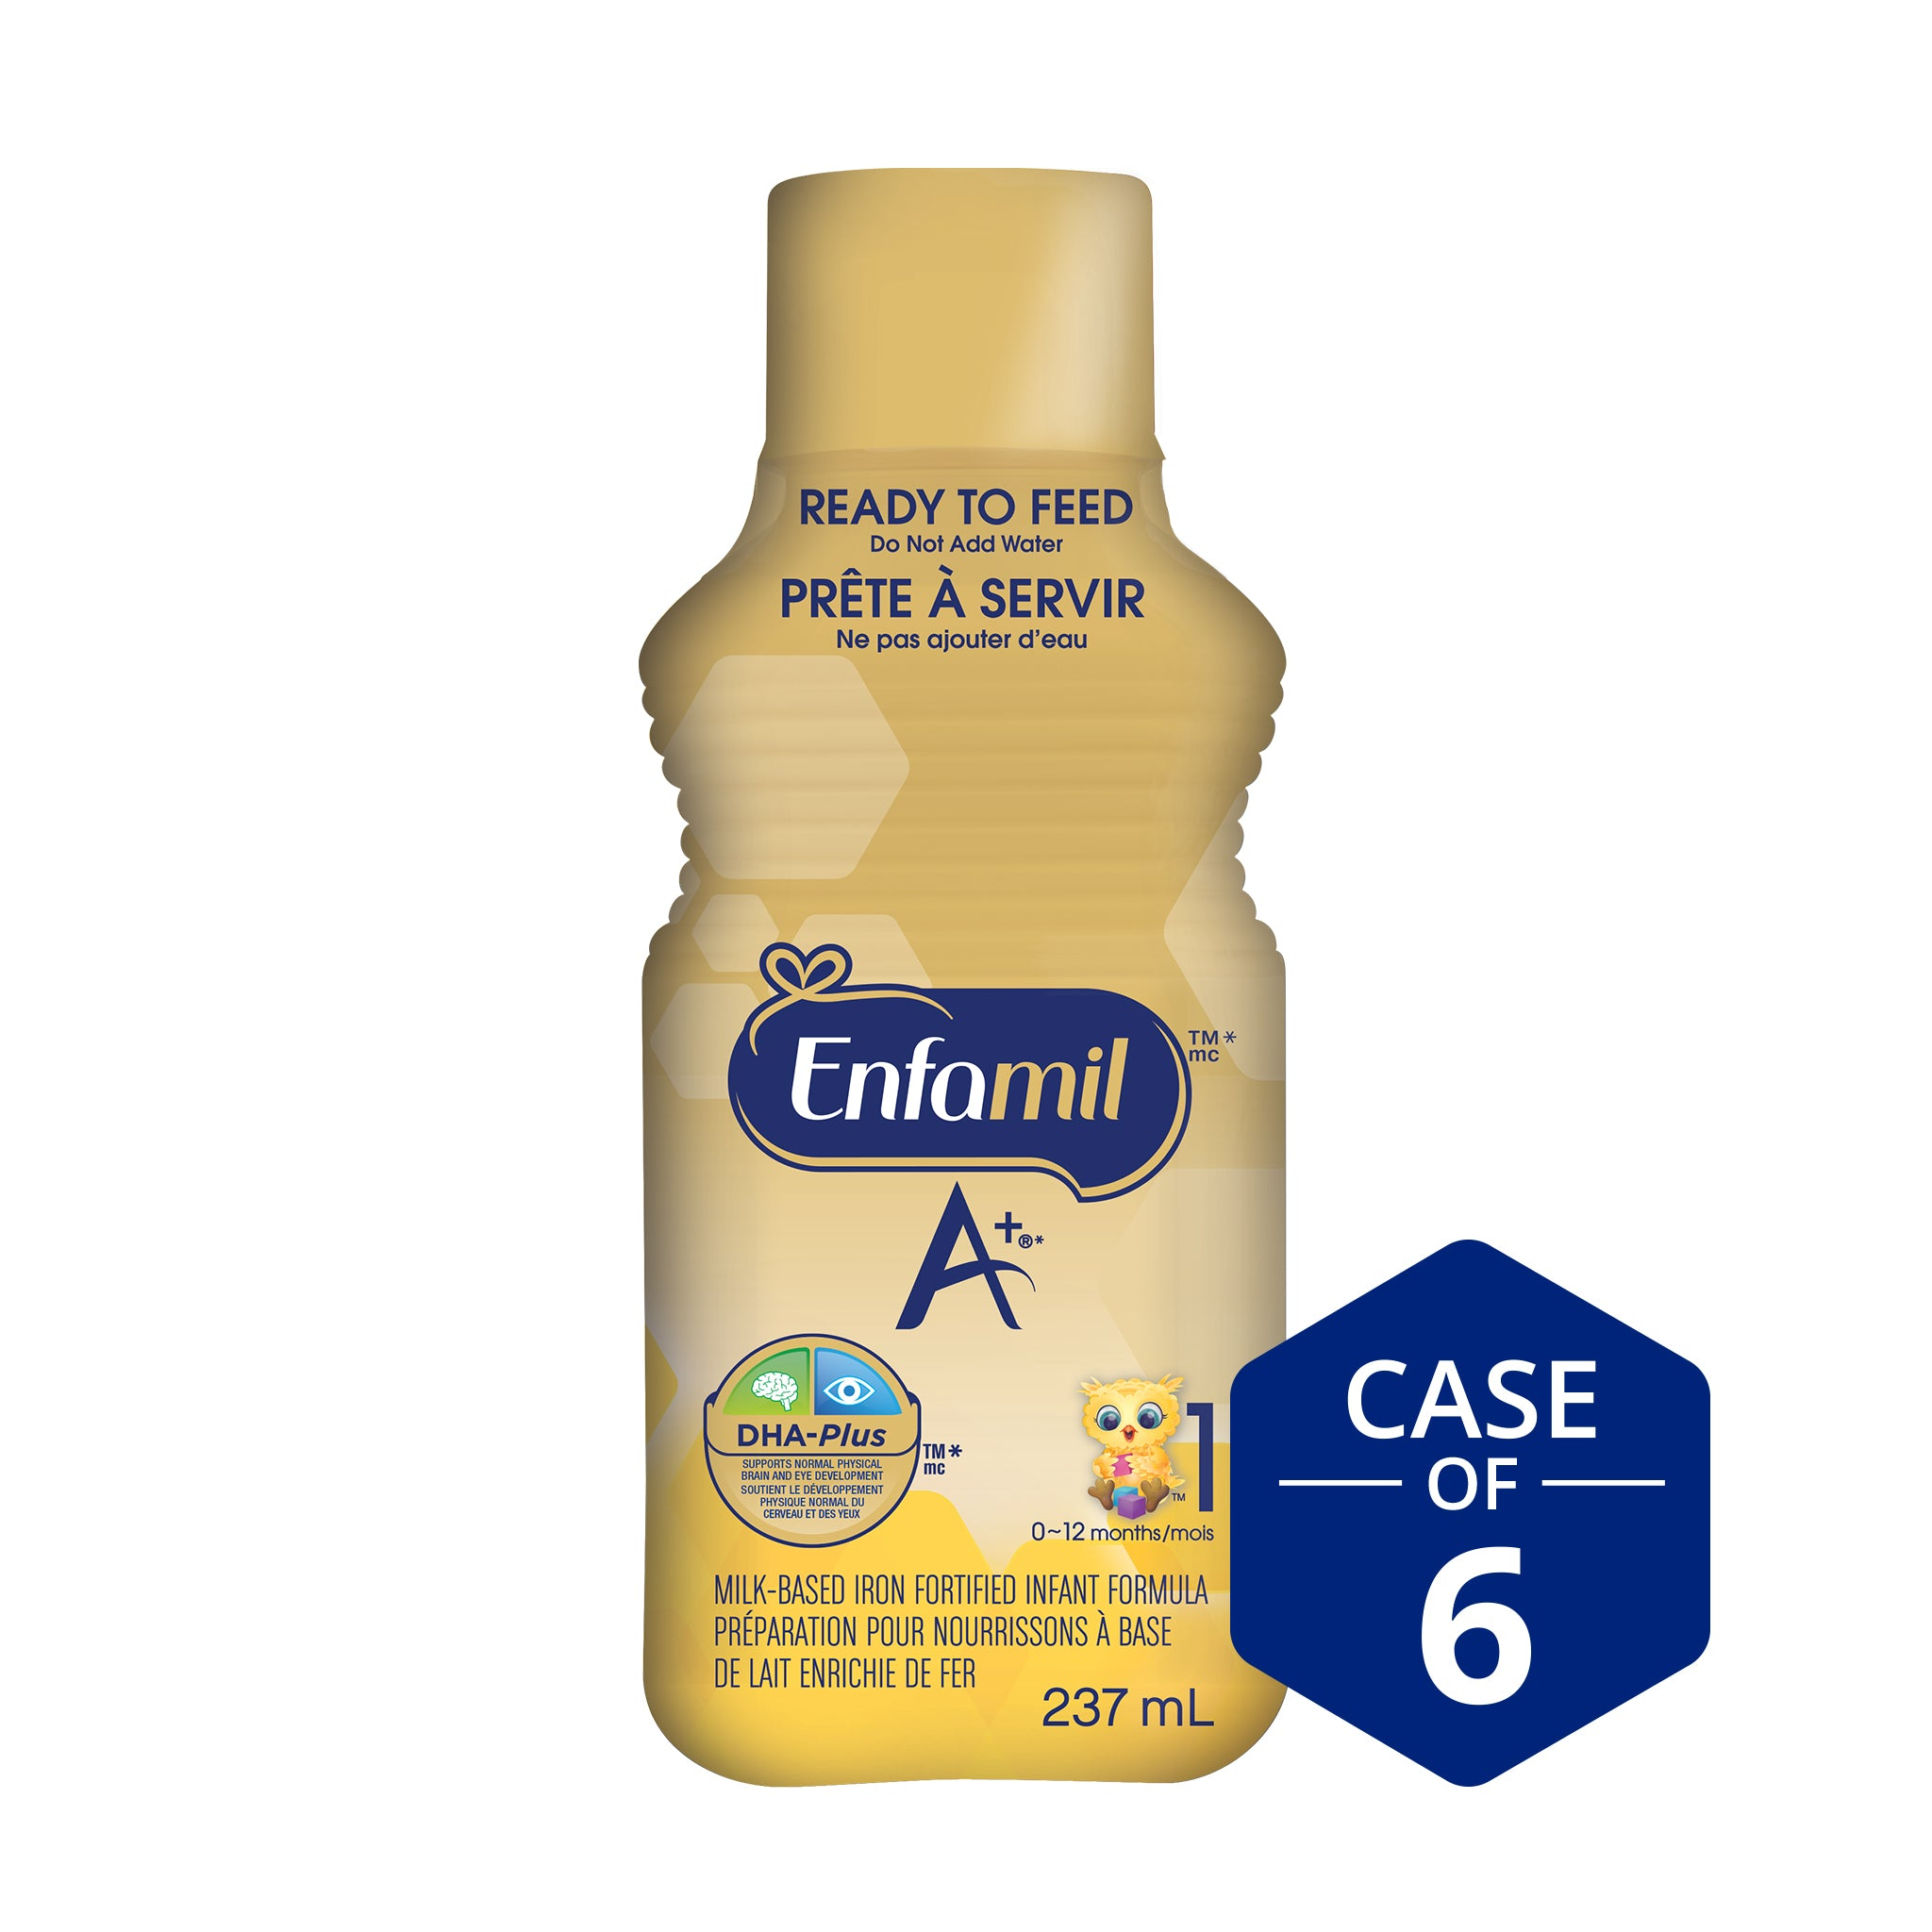 Enfamil A+® Infant Formula, Ready to Feed Bottles, 237mL